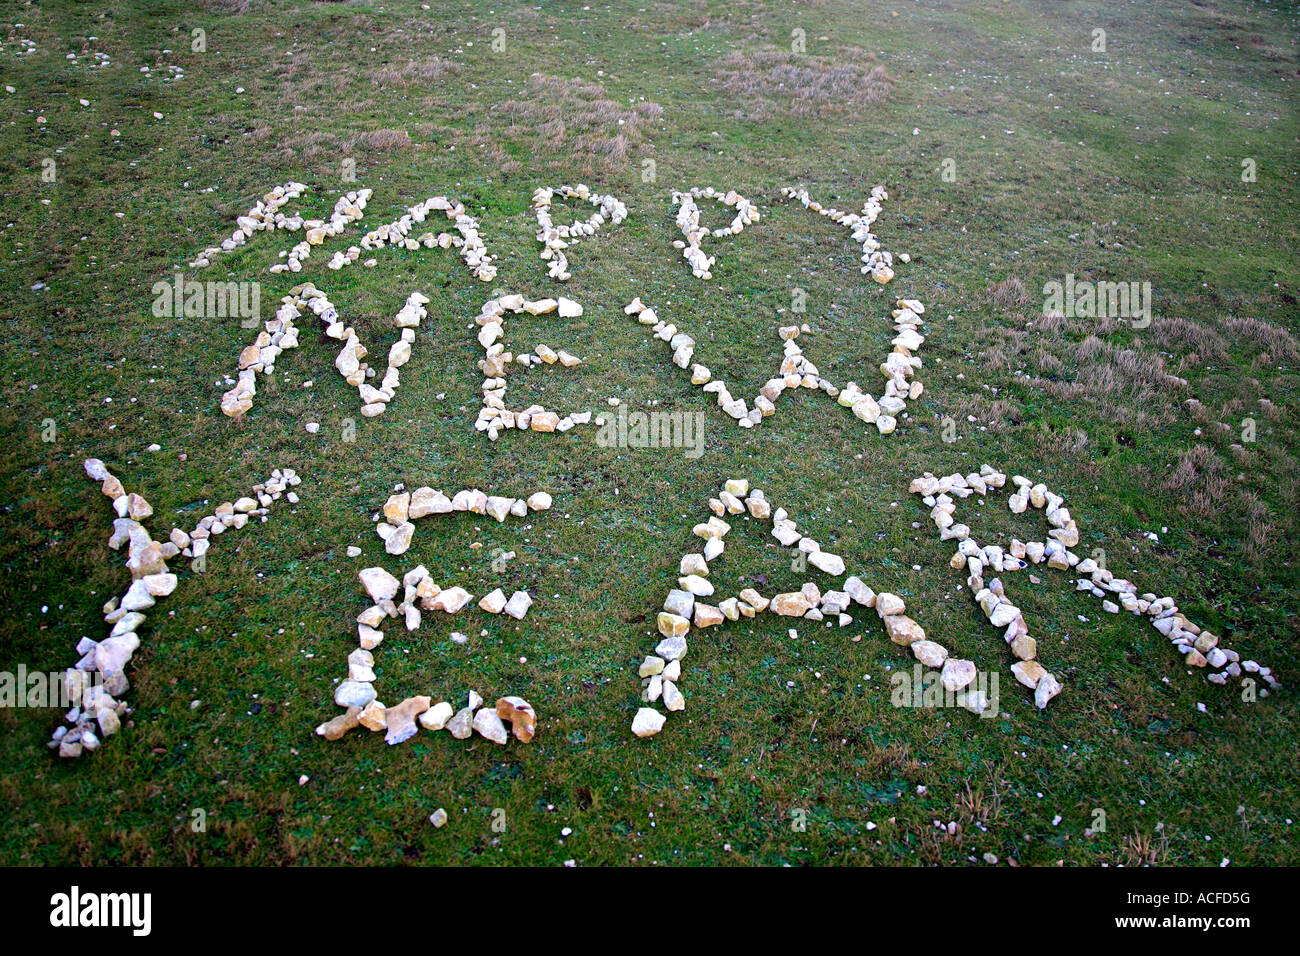 Happy New Year in Pebbles on Green Grass - Stock Image